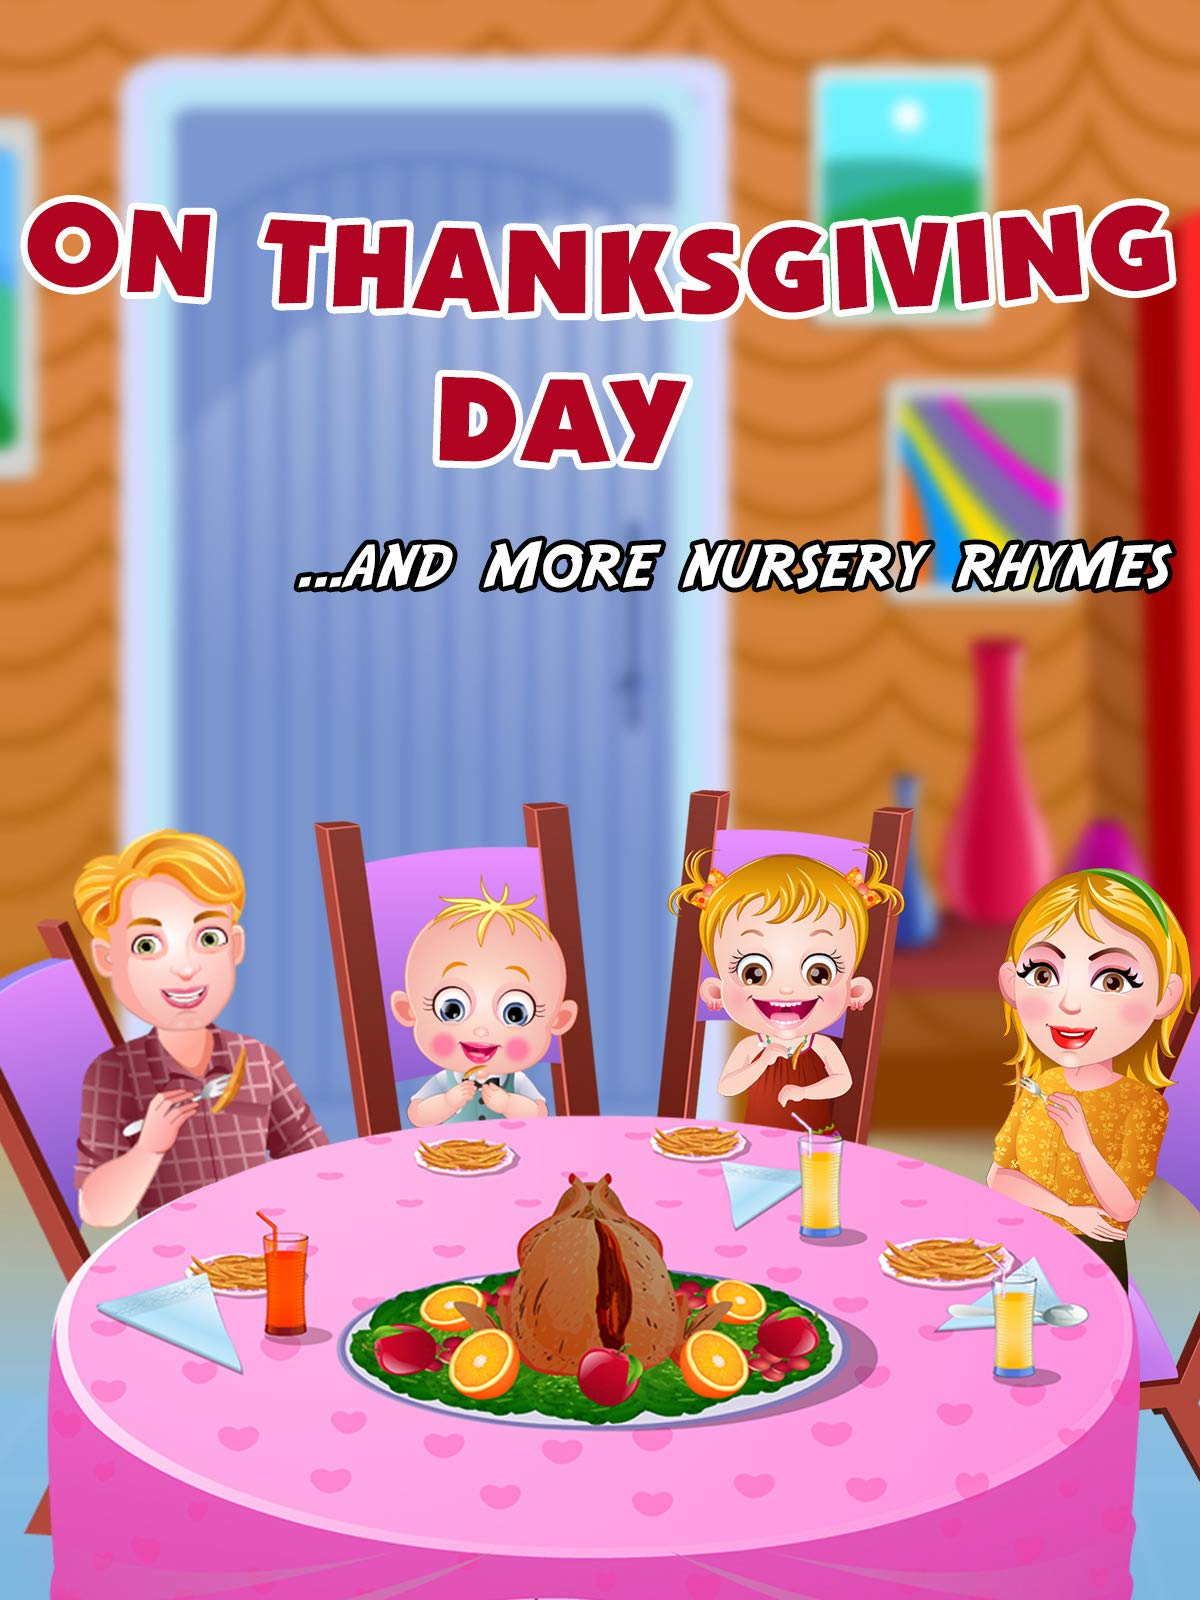 On Thanksgiving Day and more nursery rhymes